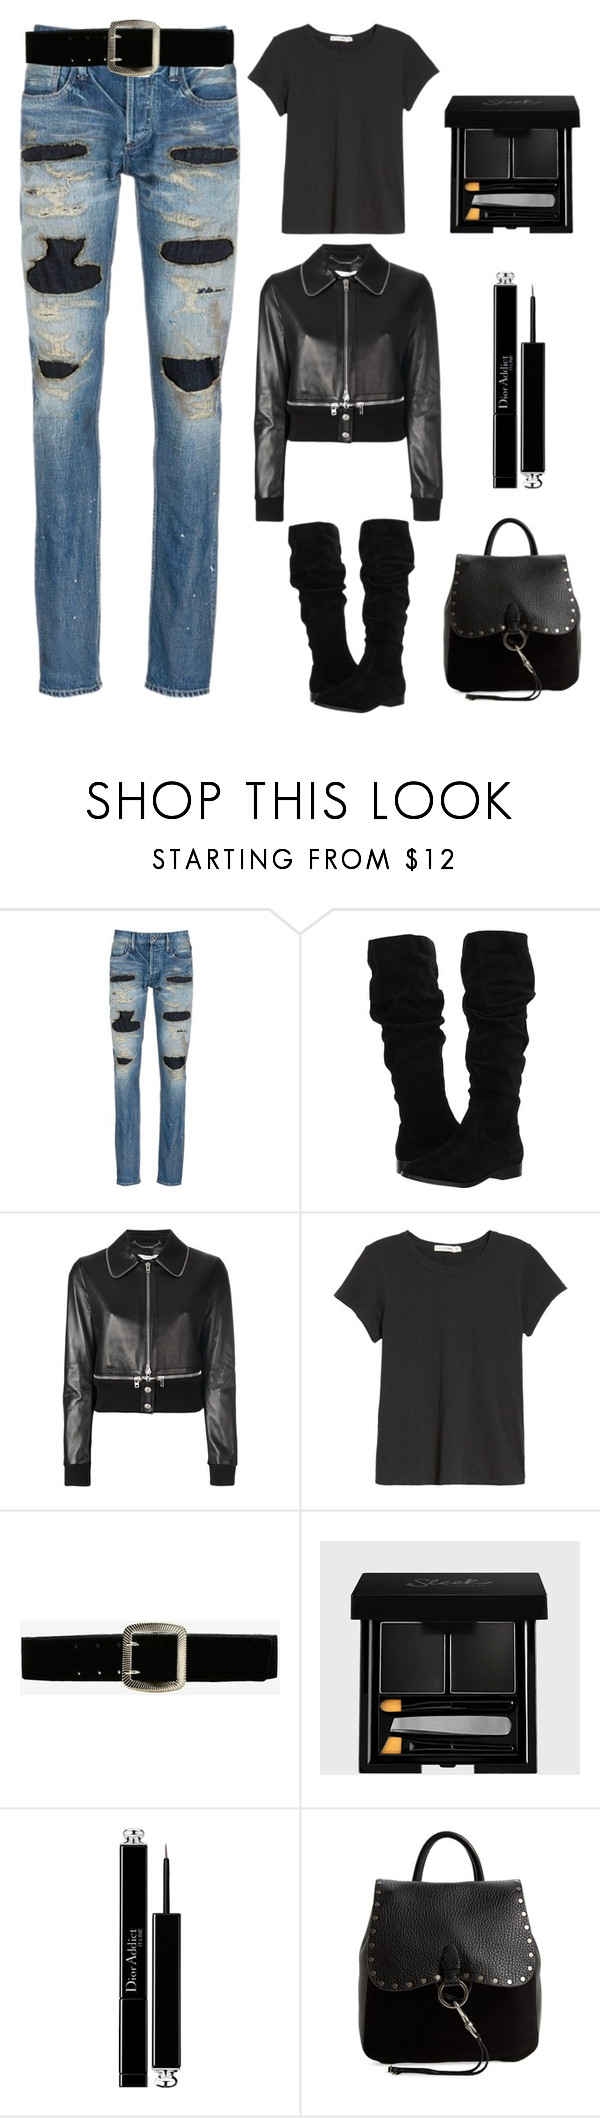 """""""Black never gets old"""" by im-karla-with-a-k ❤ liked on Polyvore featuring Denham, Steve Madden, Givenchy, rag & bone/JEAN, Express, Christian Dior and Rebecca Minkoff"""